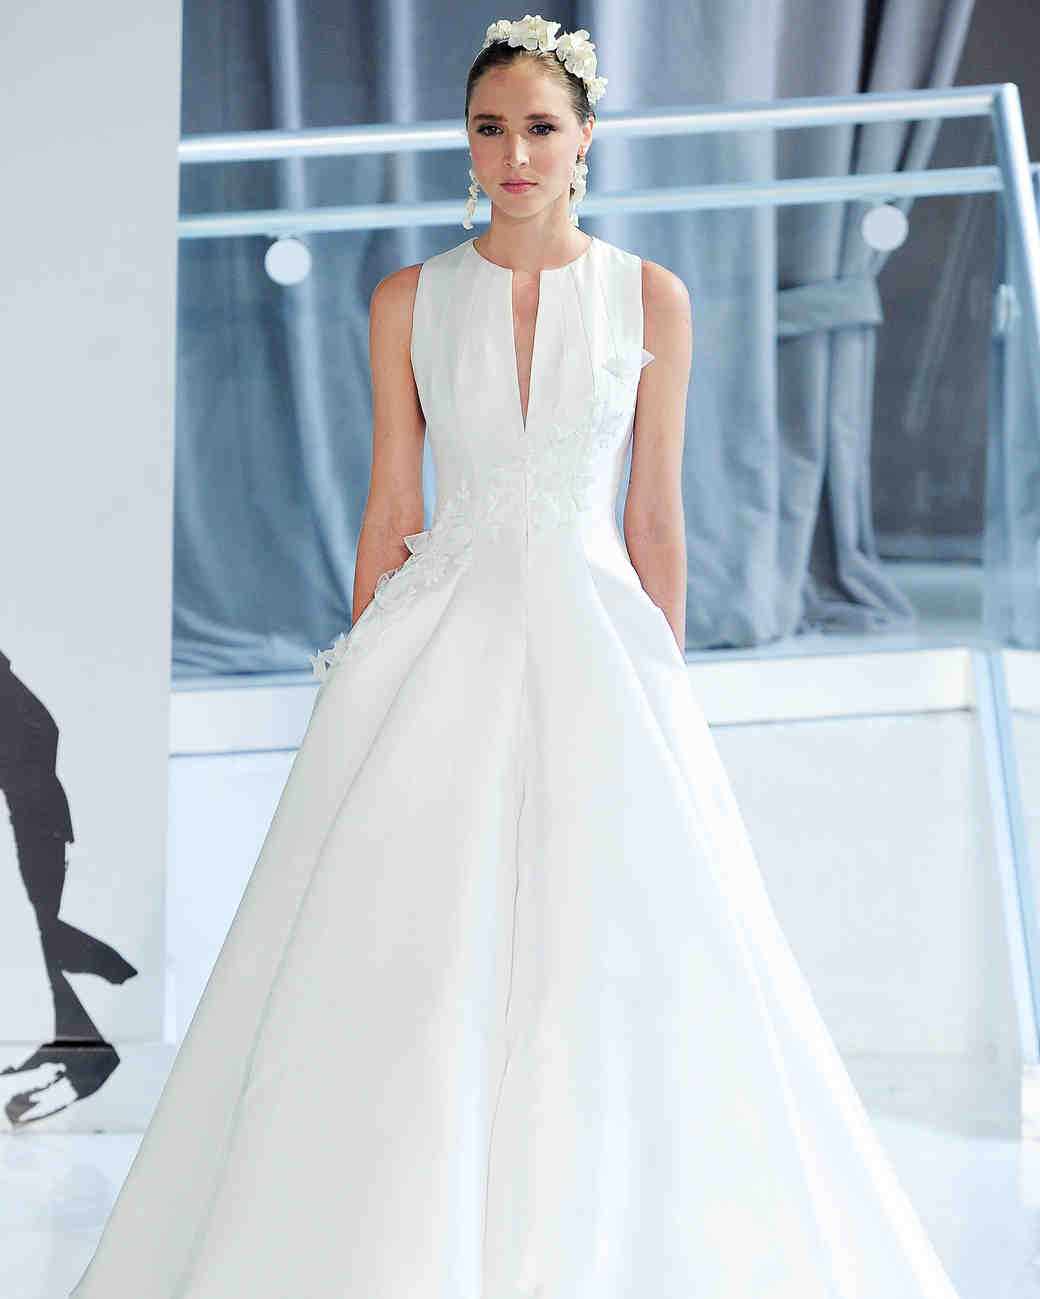 Old Fashioned Wedding Dress Charlotte Nc Pictures - All Wedding ...